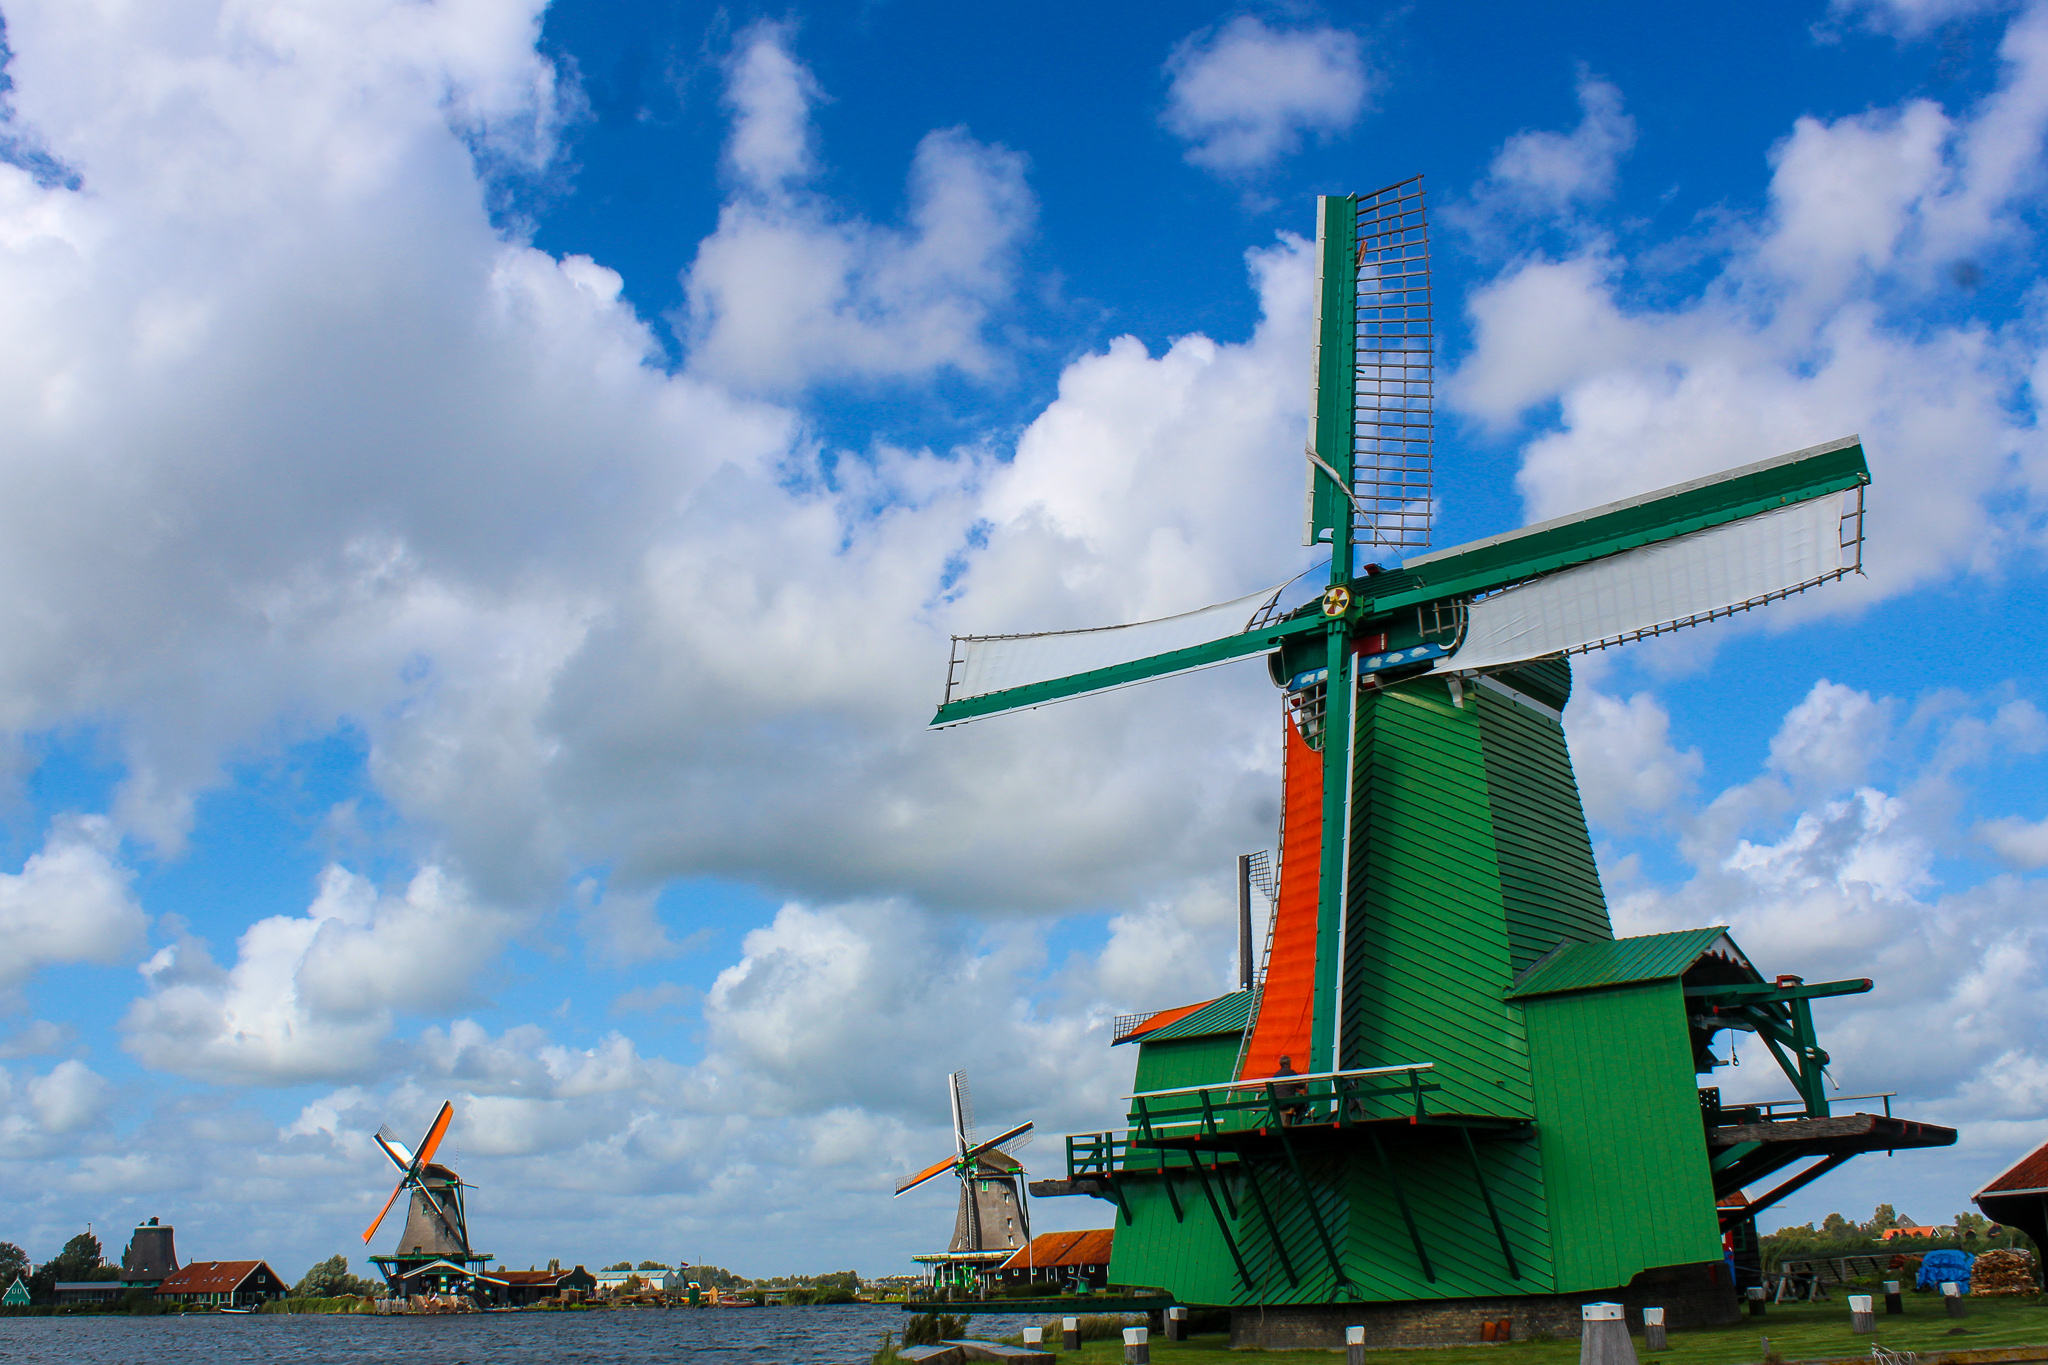 amsterdam in 2 days itinerary includes taking time to go to the windmills